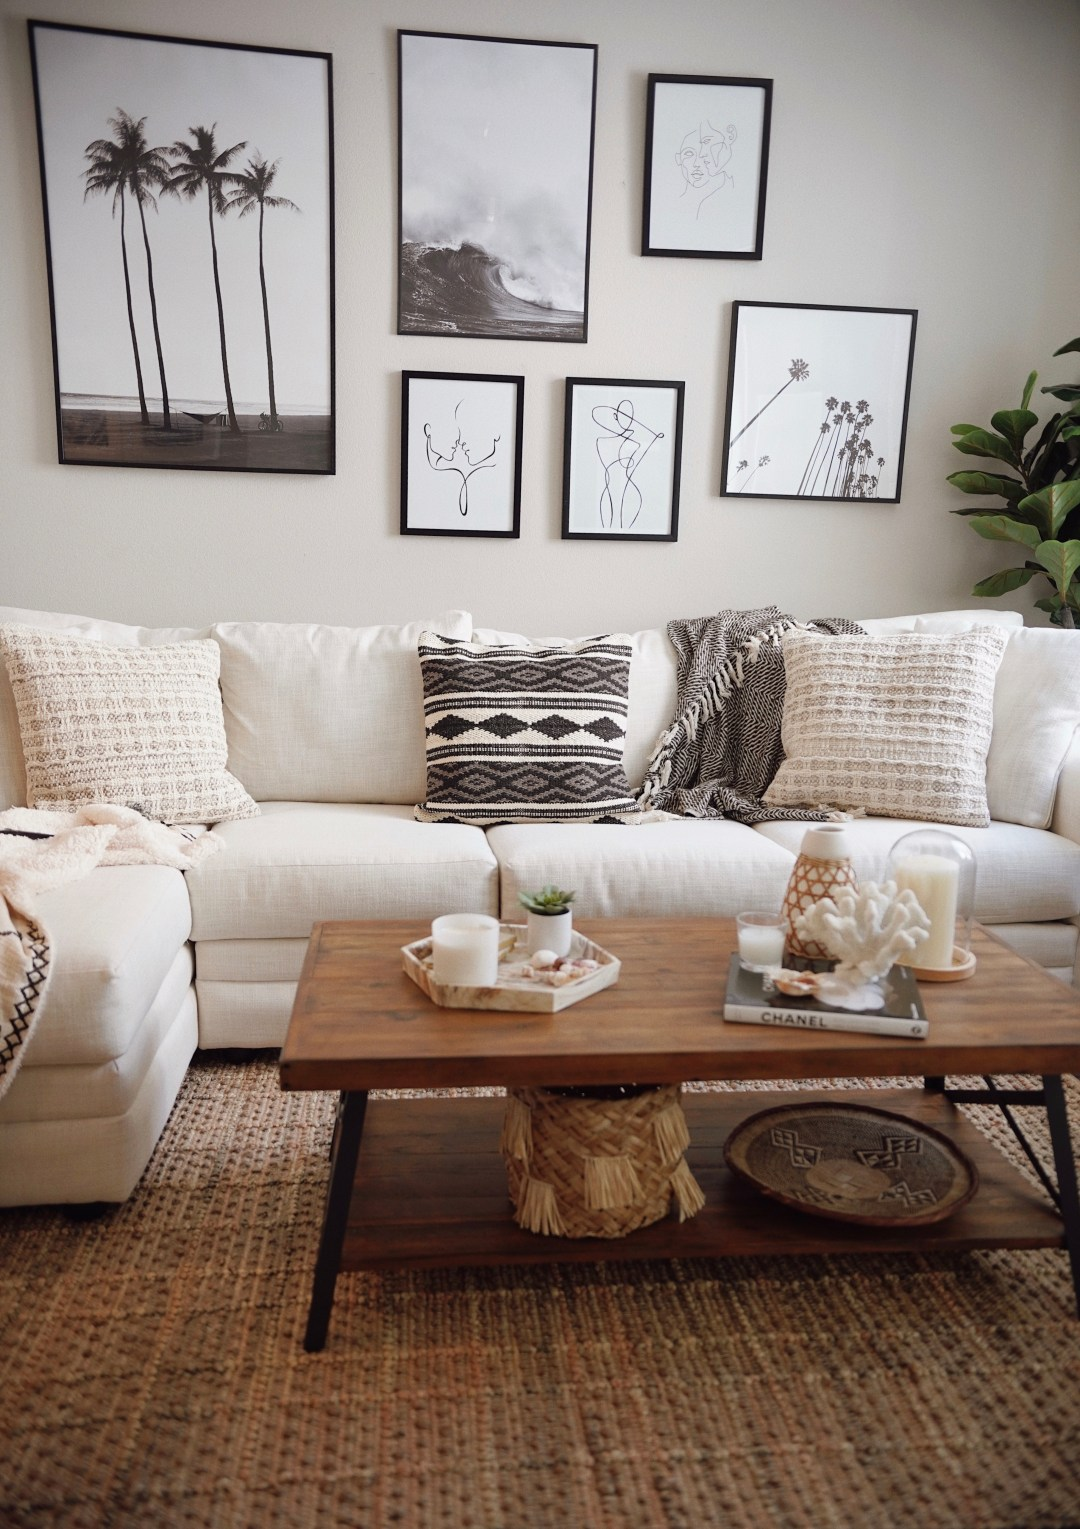 How To Style A Coffee Table Sustainable Decor Ideas Live Love Wear It